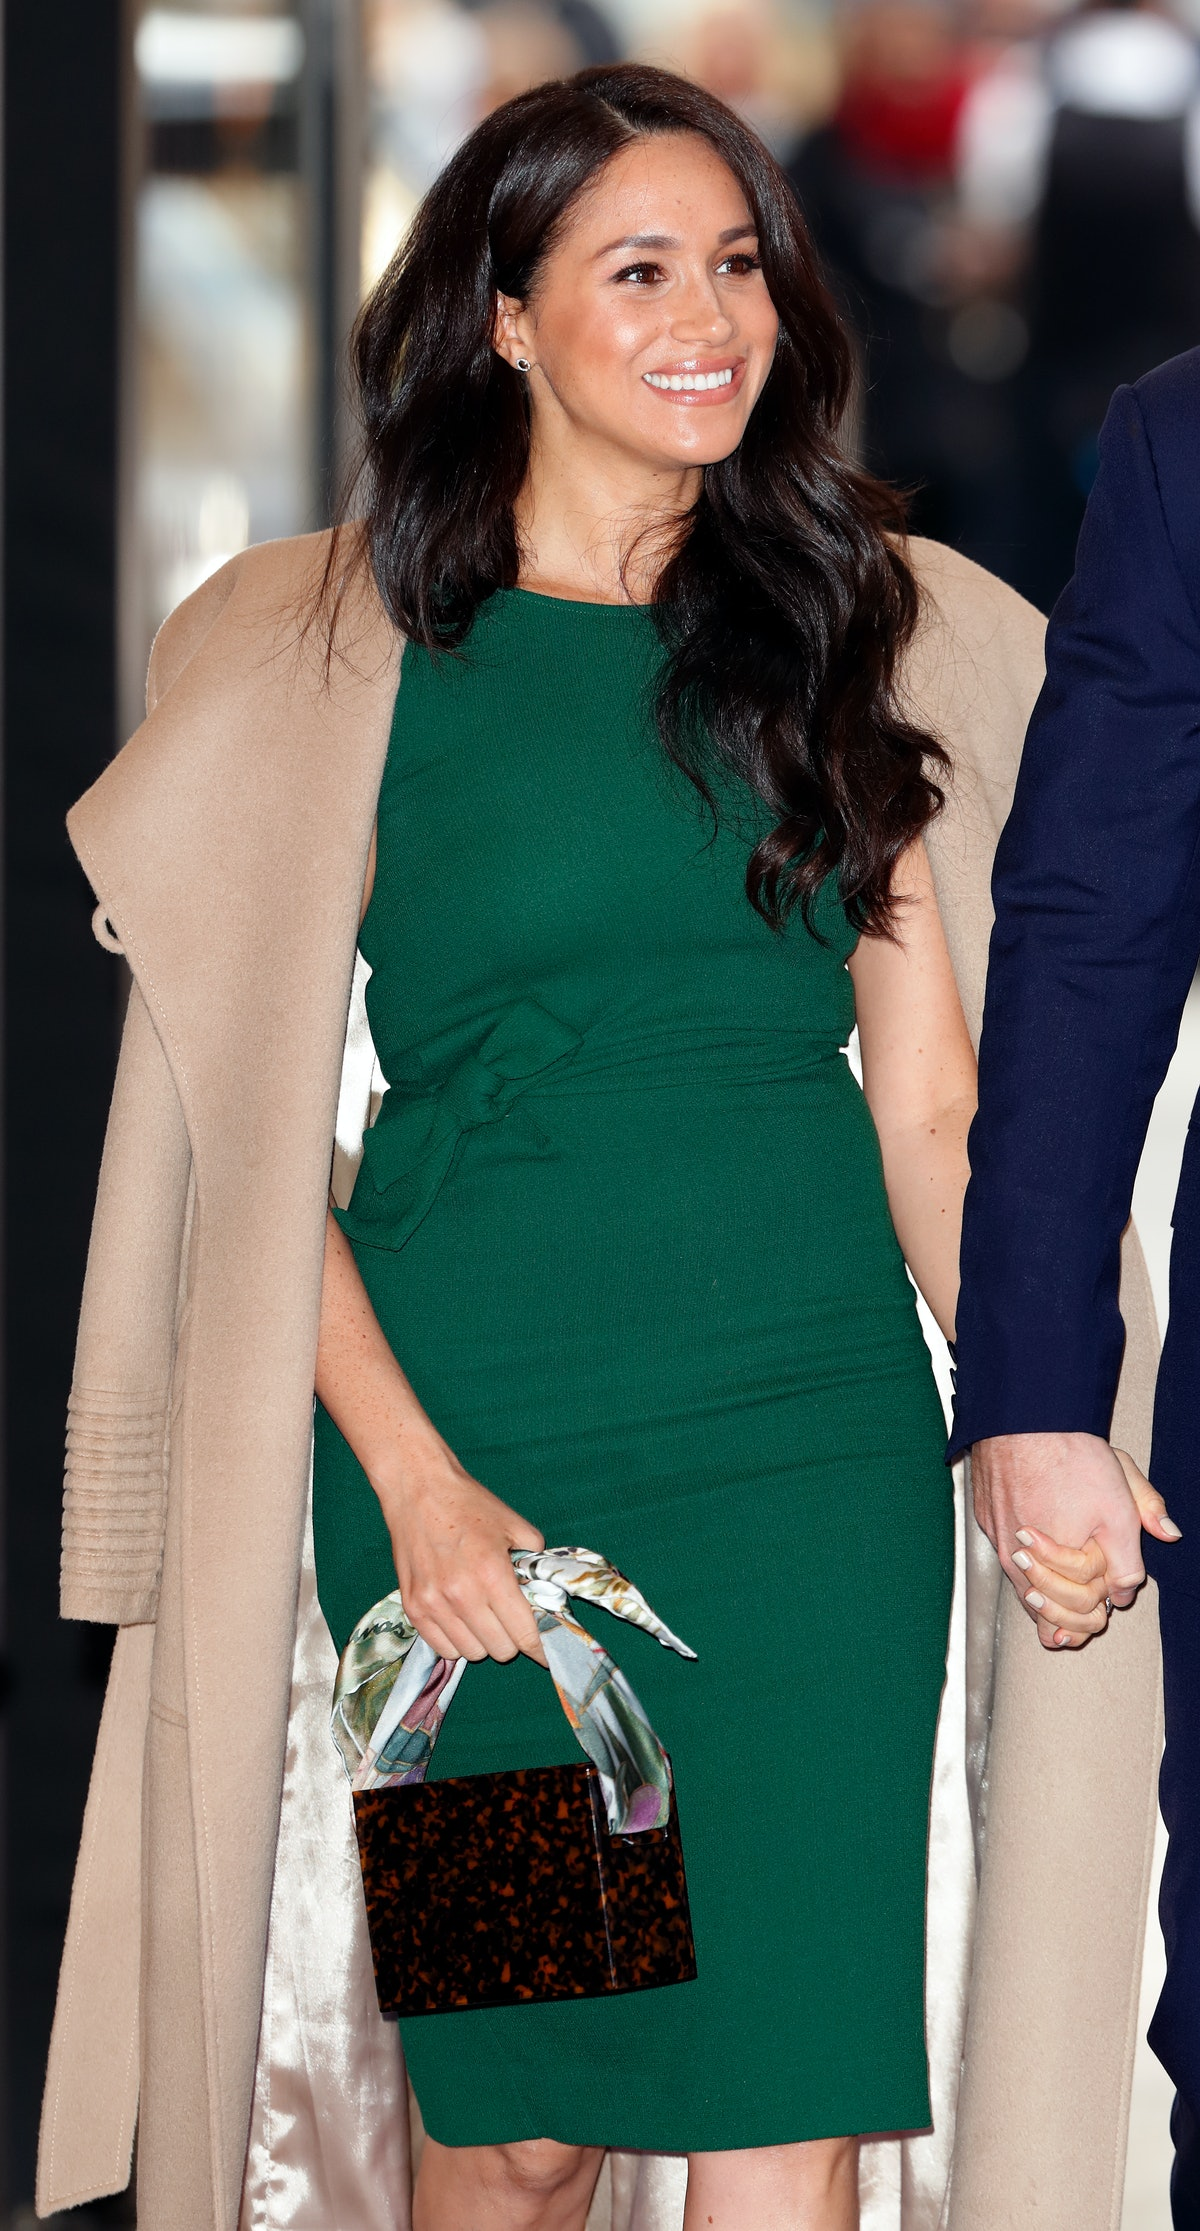 Meghan Markle wore a wool coat over an emerald fitted dress for the WellChild Awards in October 2019...